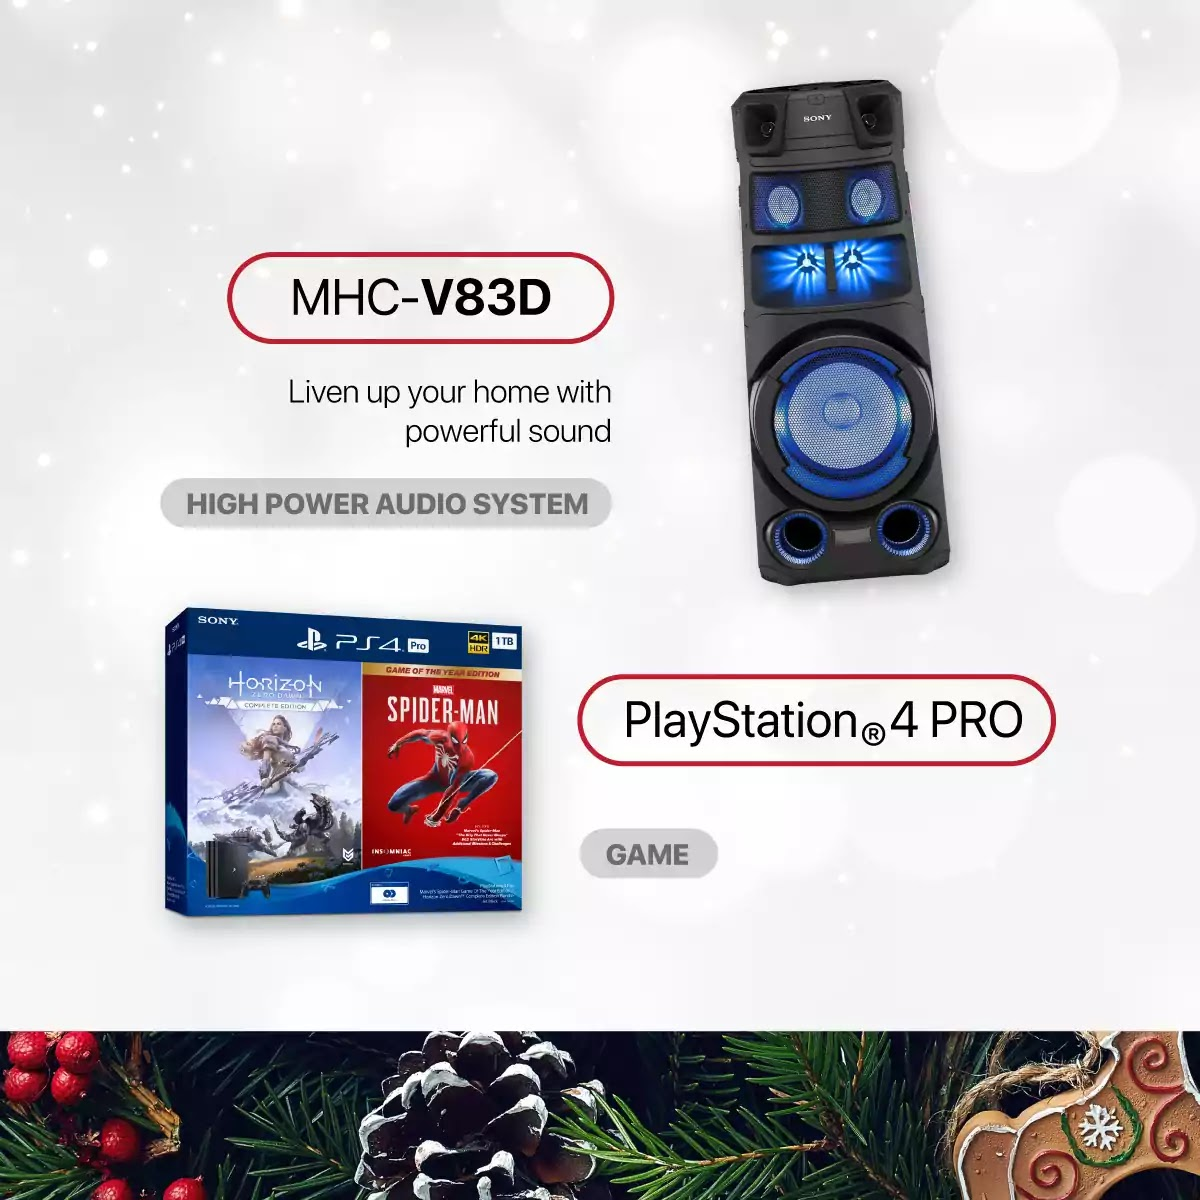 Sony PlayStation 4 PRO and MHC-V83D power audio system